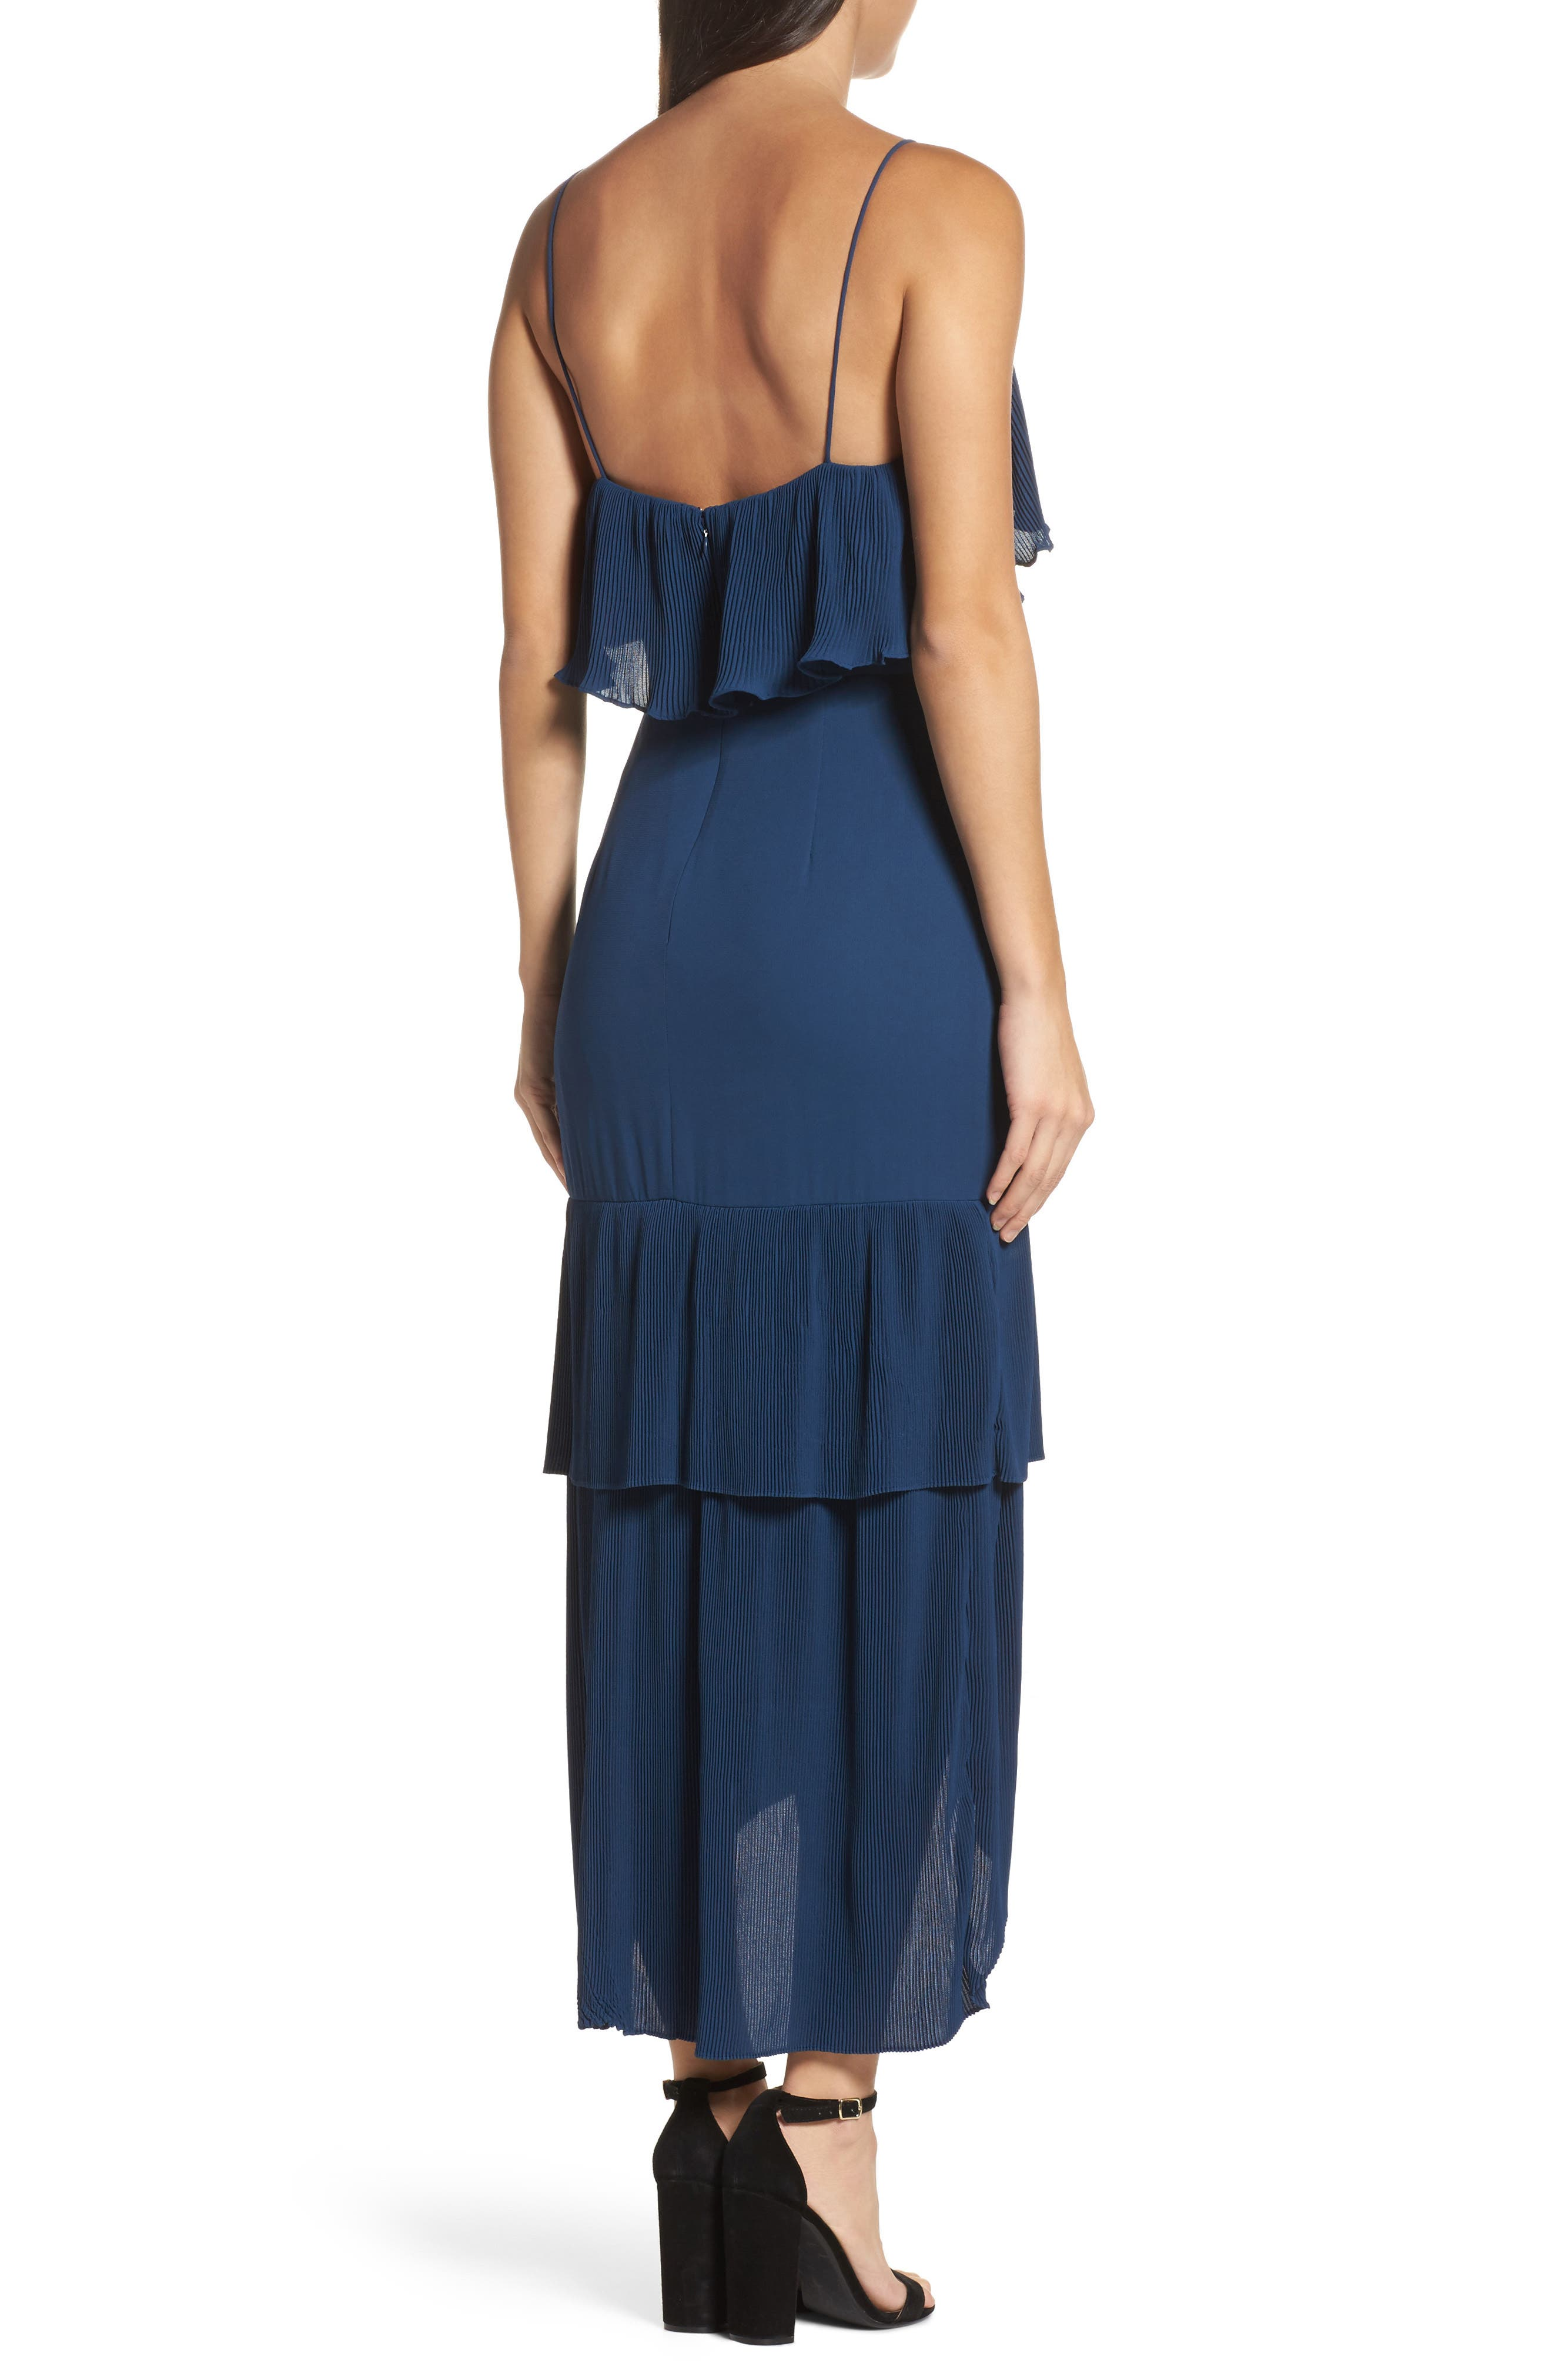 Kate Pleated Ruffle Midi Dress,                             Alternate thumbnail 2, color,                             415